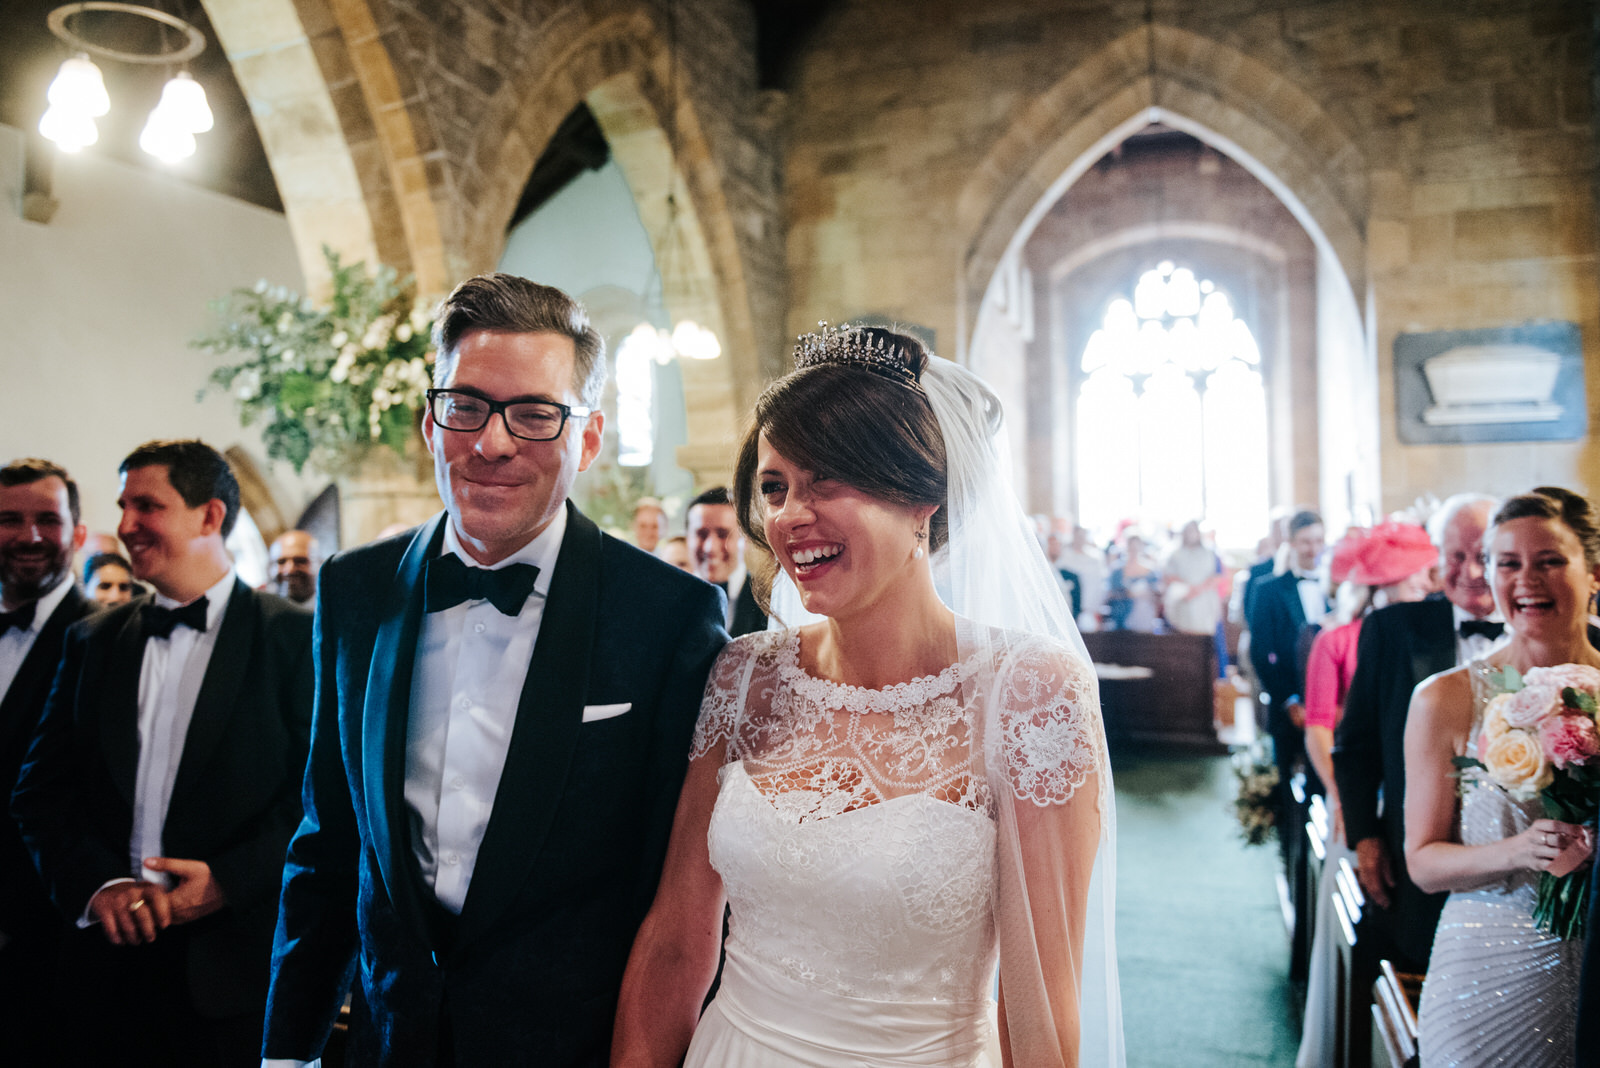 Guests smile at Bride and Groom right after first kiss